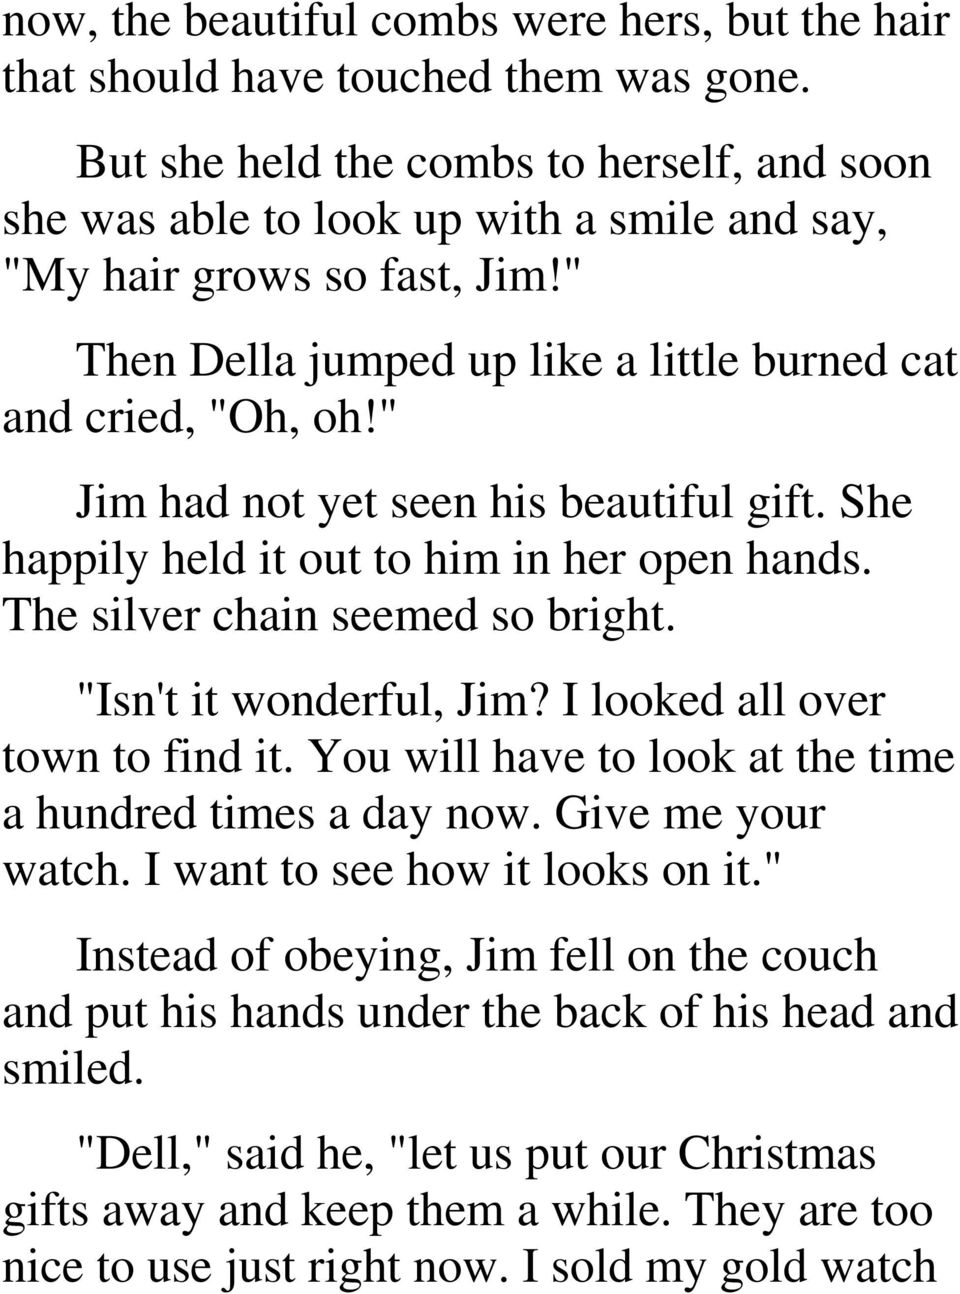 """ Jim had not yet seen his beautiful gift. She happily held it out to him in her open hands. The silver chain seemed so bright. ""Isn't it wonderful, Jim? I looked all over town to find it."